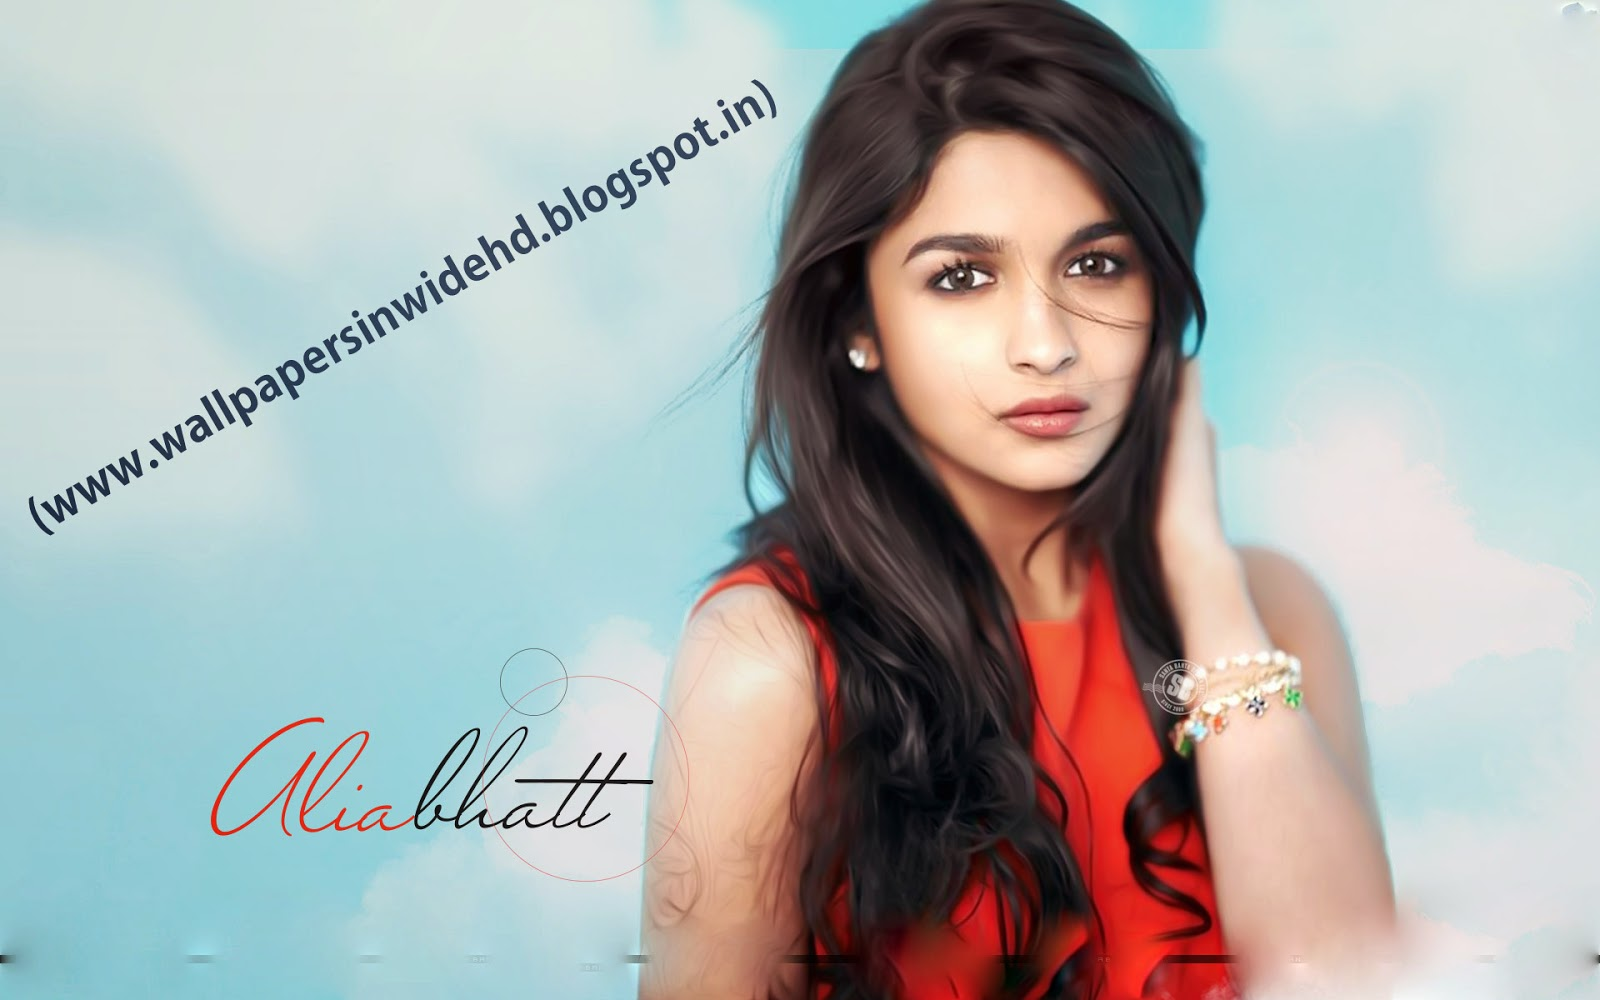 Alia Bhatt Birthday Hd: 100%Hdwallpapers: Alia Bhatt HD Wallpapers Free Download